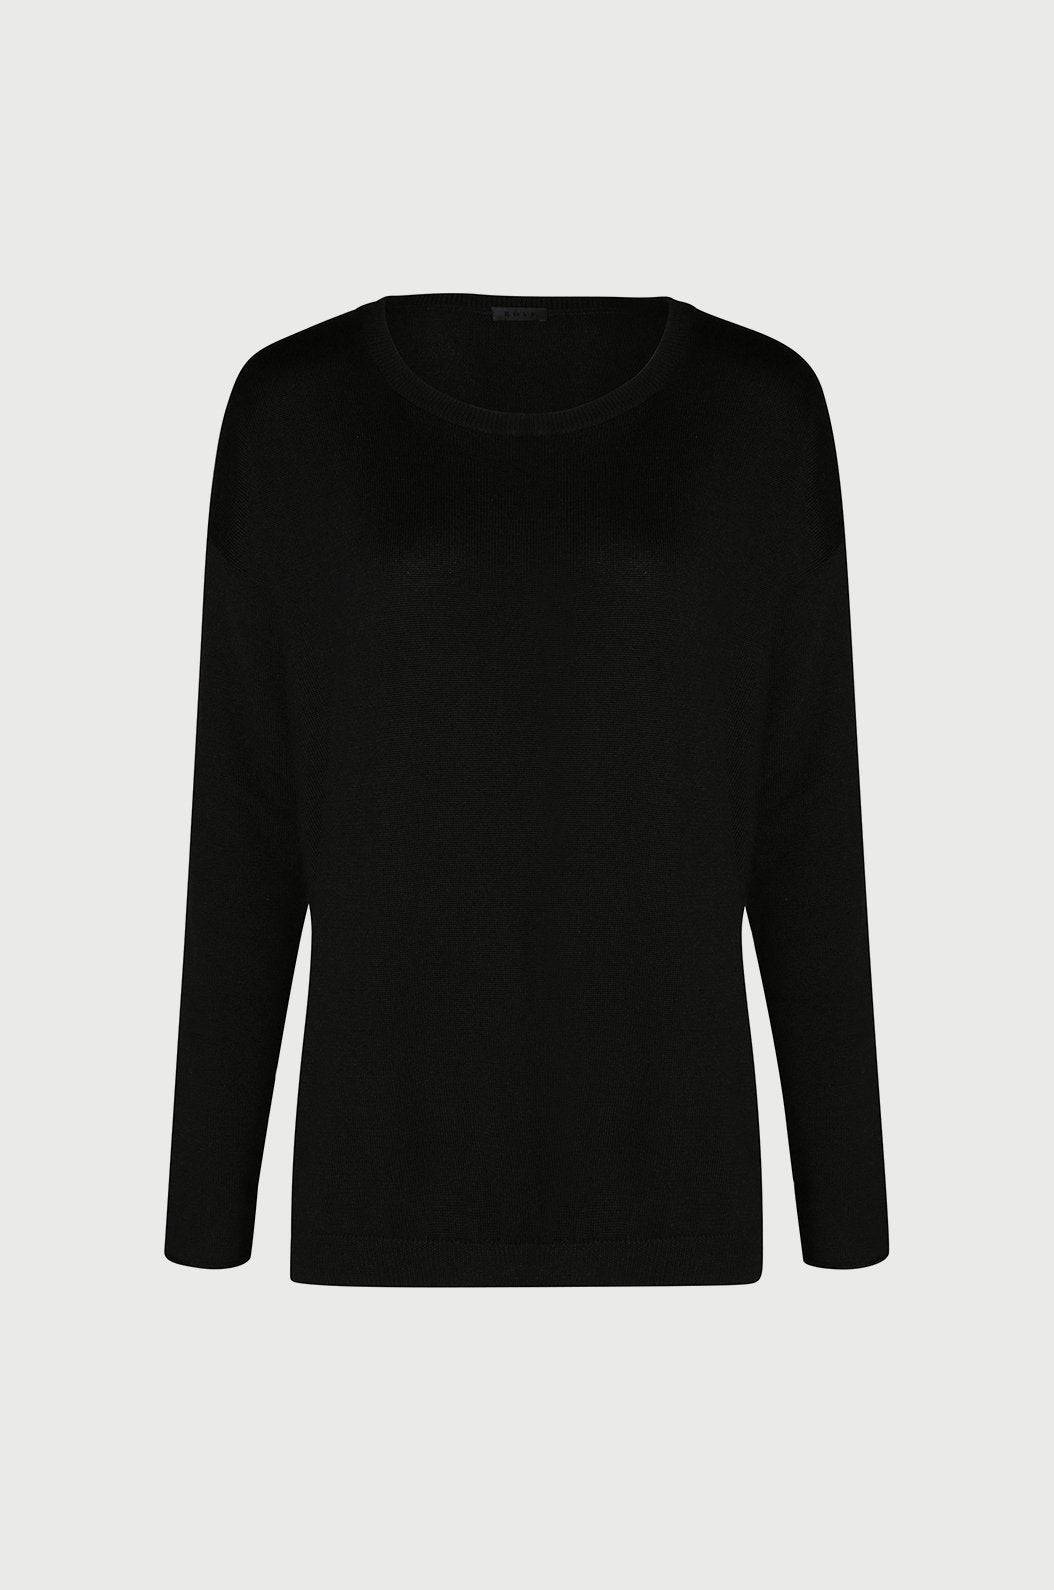 Luxury loungewear - ULTRA CASHMERE CREW NECK SWEATER | ROYL